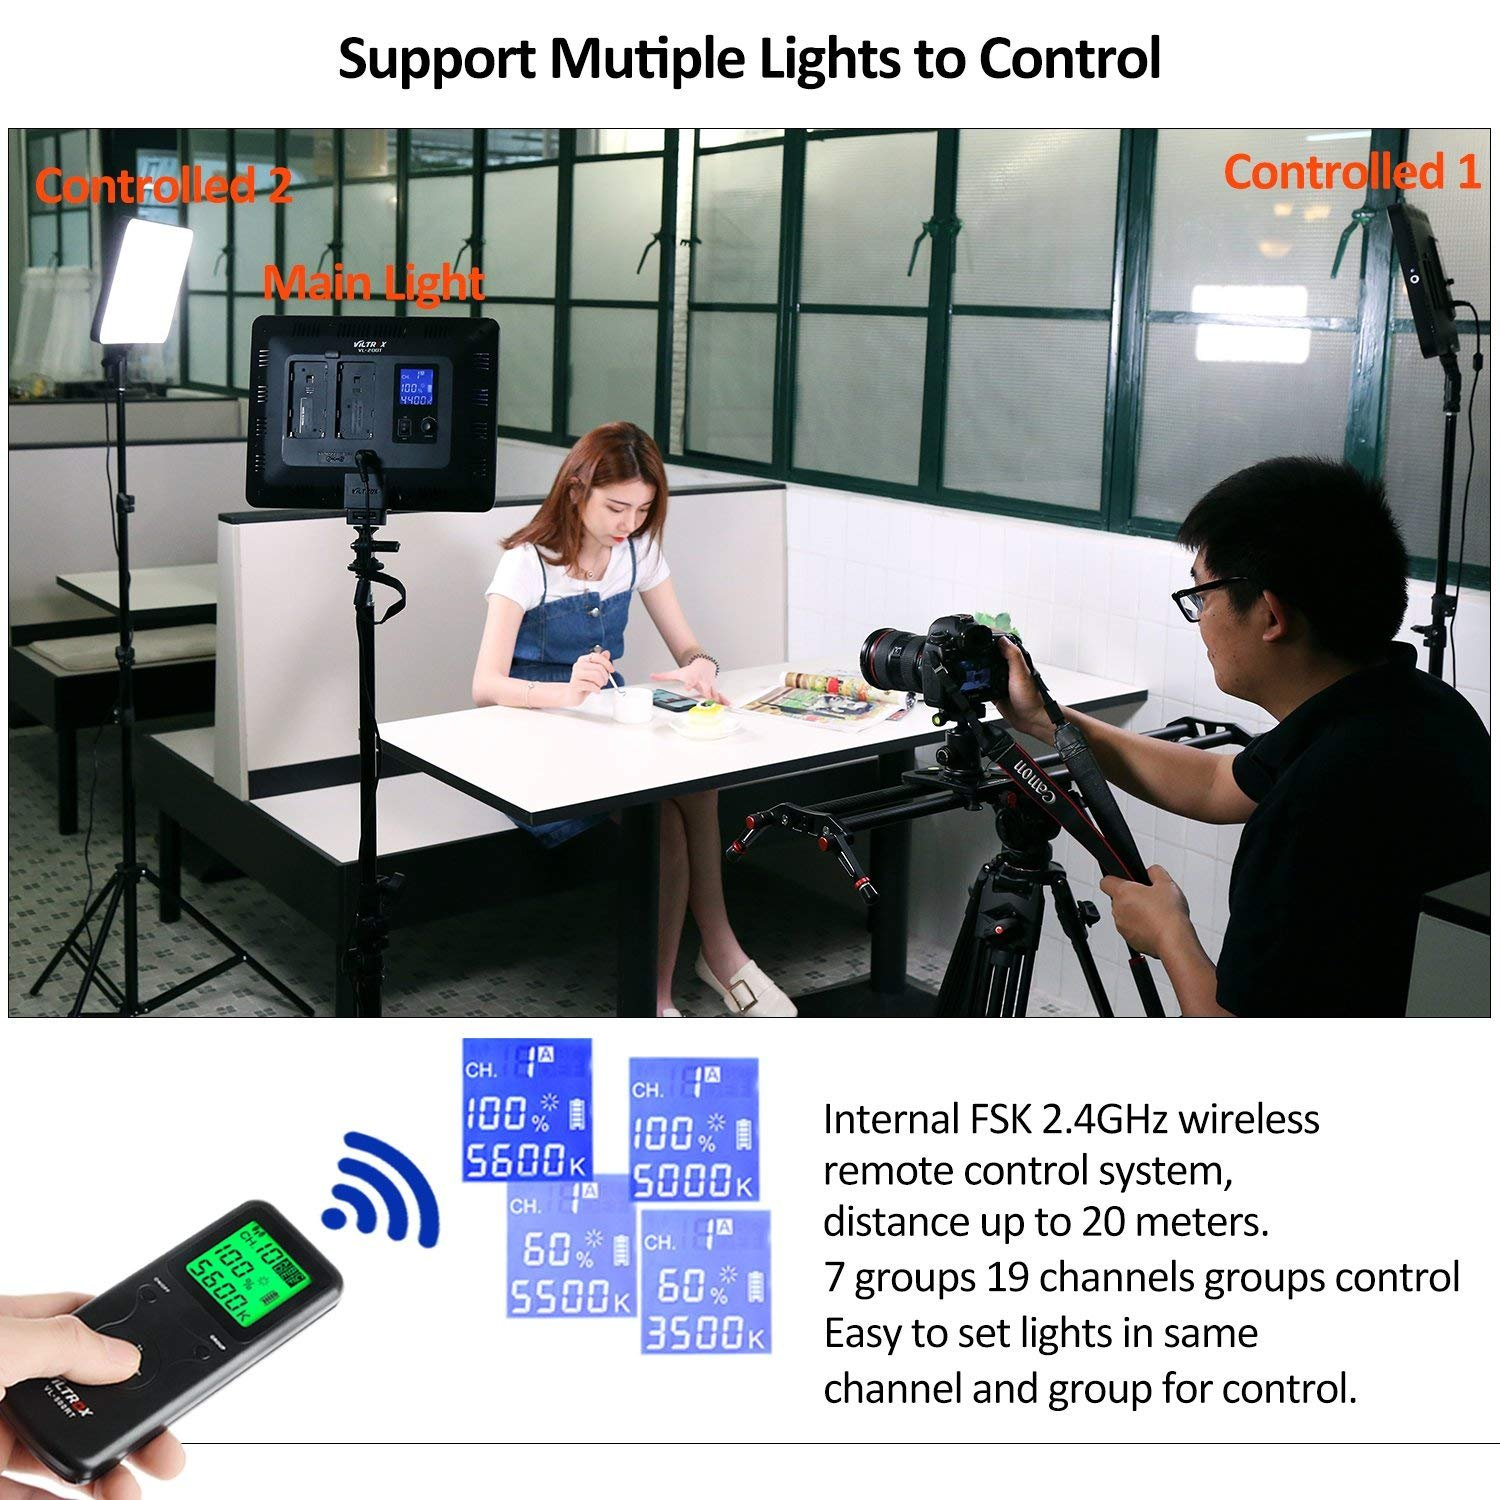 2 Packs VILTROX LED Panel Light with Stand Kit, (30W/2450Lux) Bi-Color Dimmable Studio Photography Video Lighting kit CRI95+ for Wedding News Interview YouTube Live Video by VILTROX (Image #4)